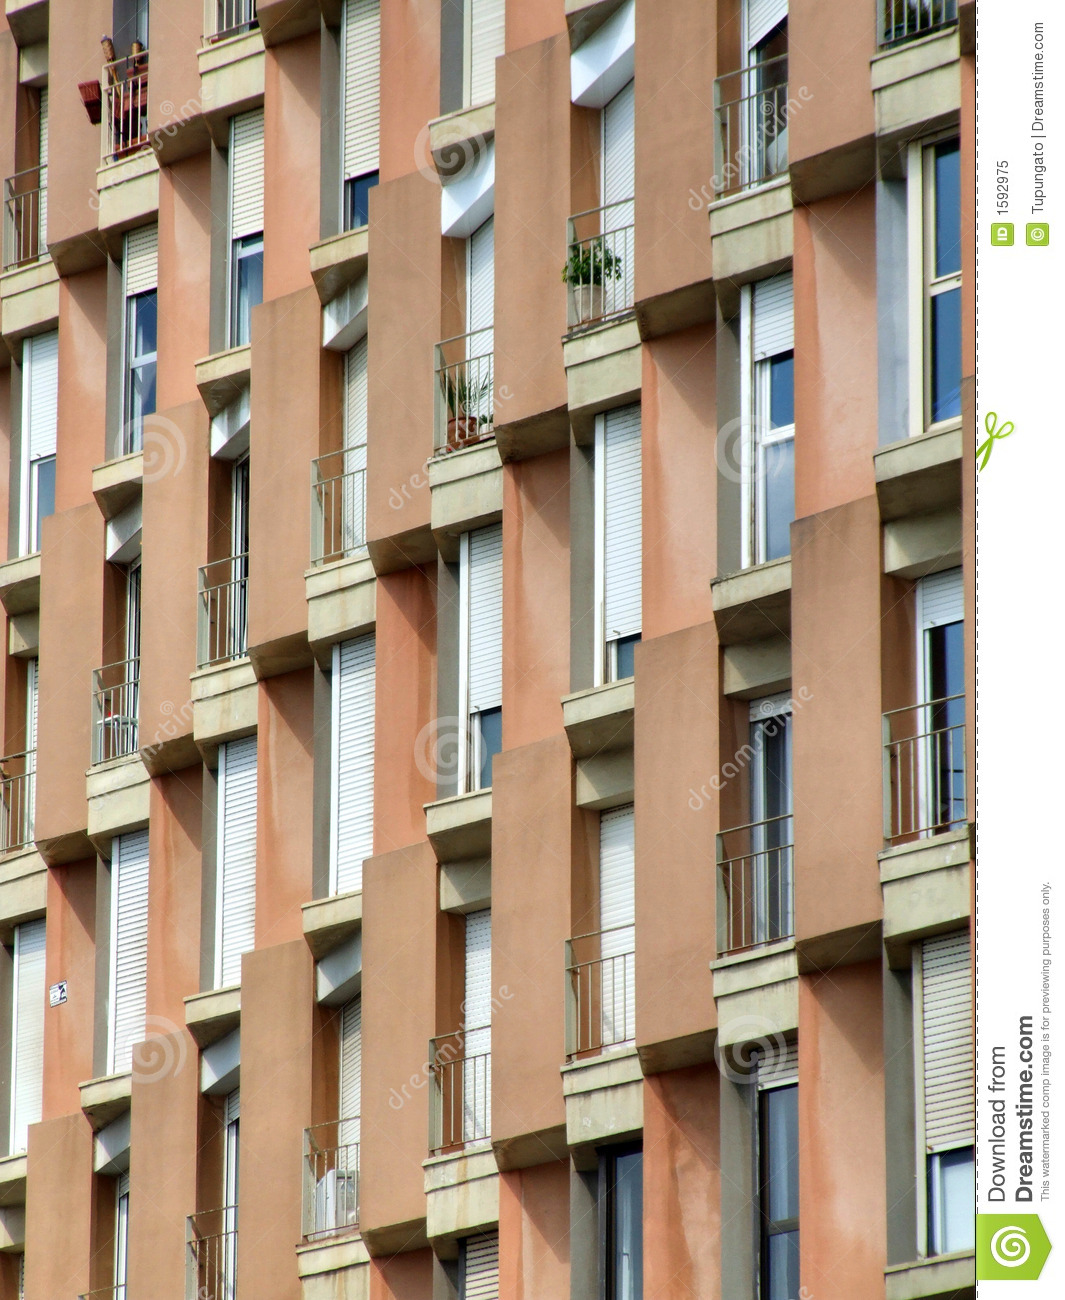 Barcelona Apartments: Apartments In Barcelona Stock Image. Image Of Spain